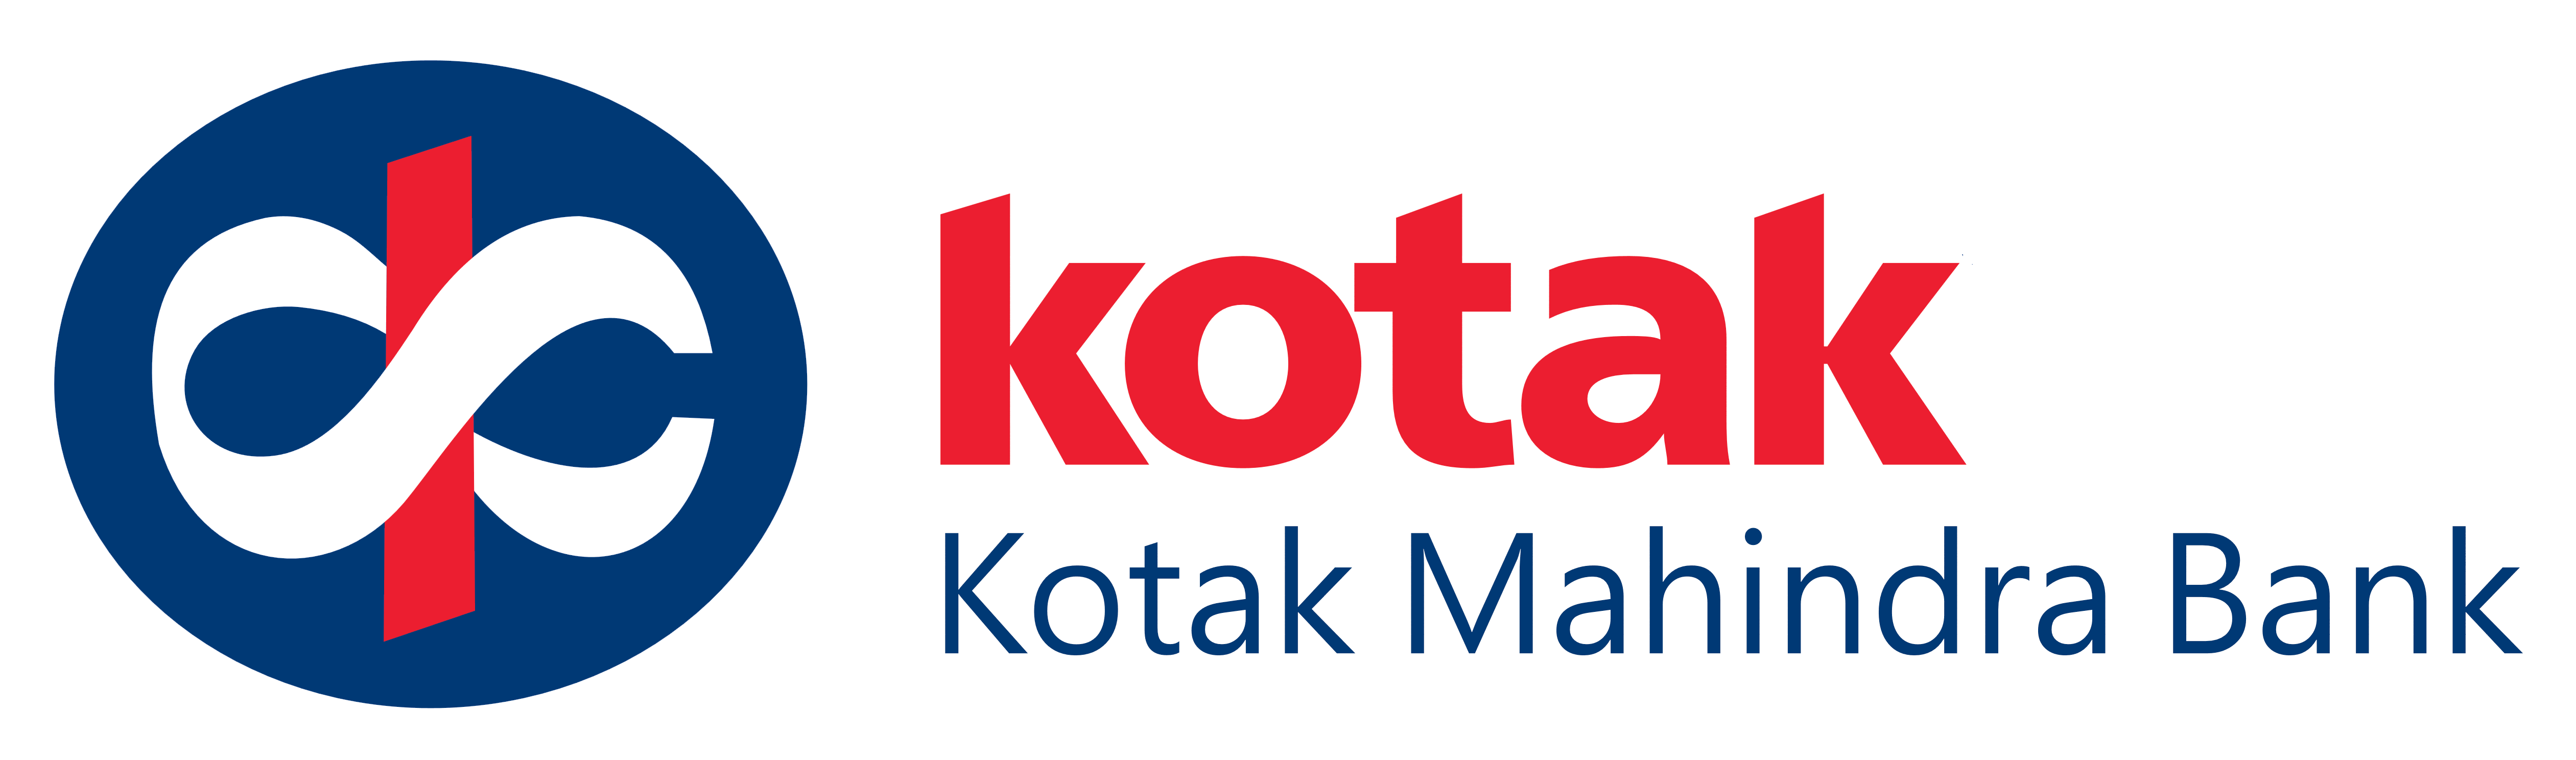 Kotak Mahindra Bank Ltd logo